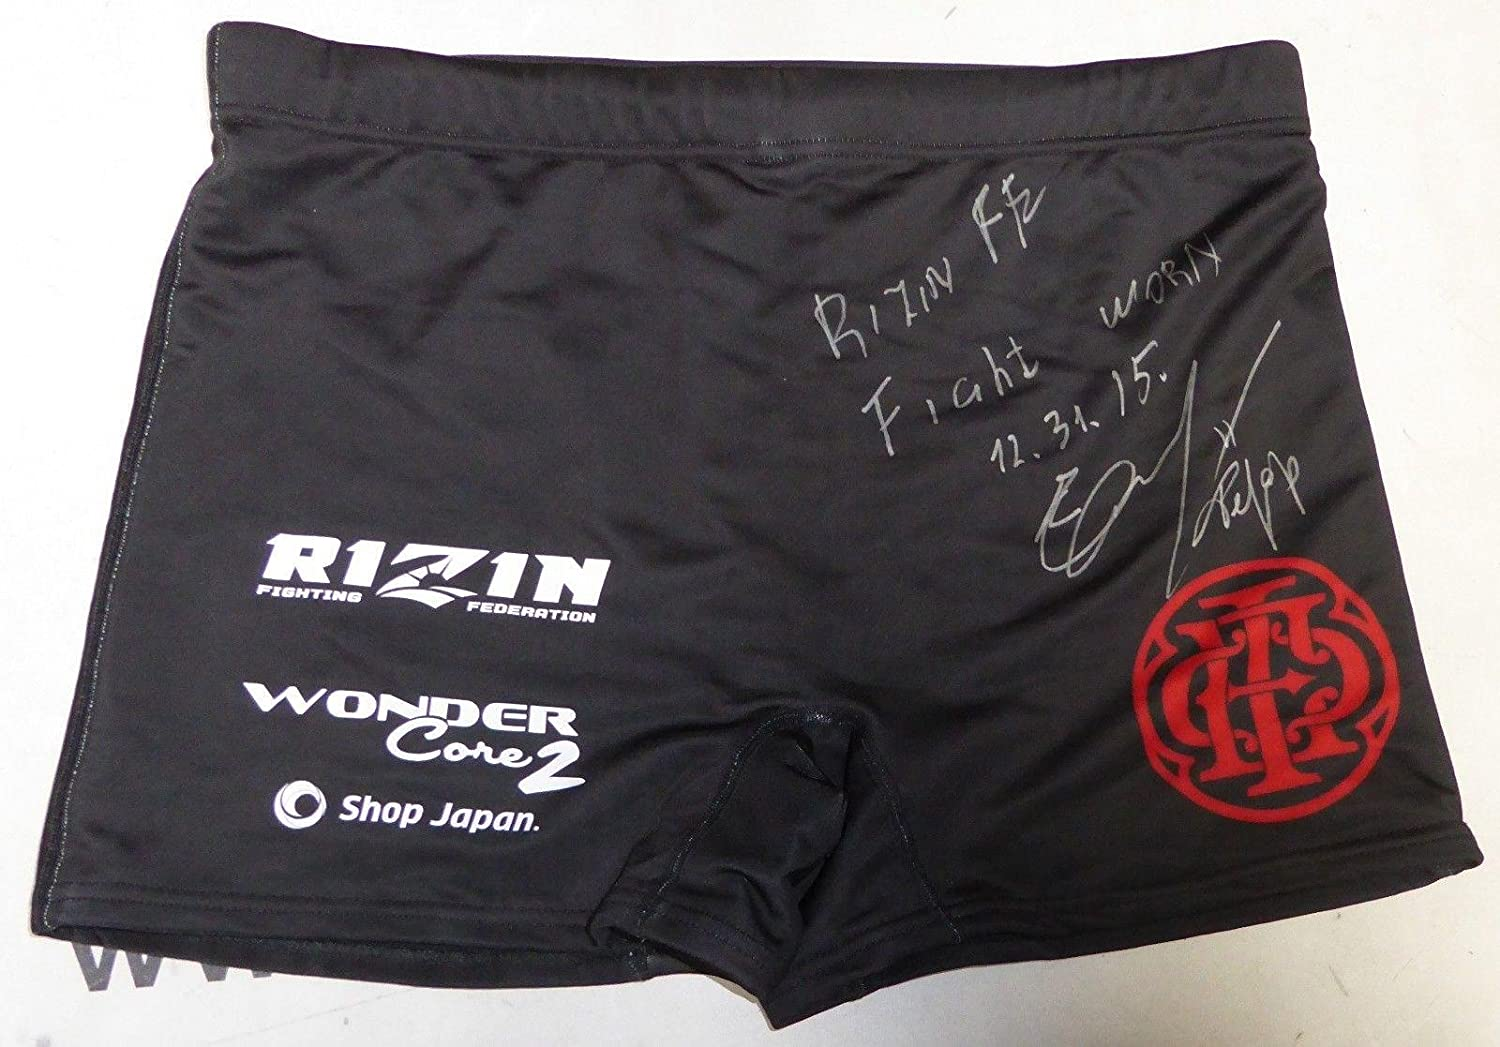 Fedor Emelianenko Signed Rizin 12/31/2015 Fight Worn Used Shorts Trunks - PSA/DNA Certified - Autographed UFC Jerseys and Trunks